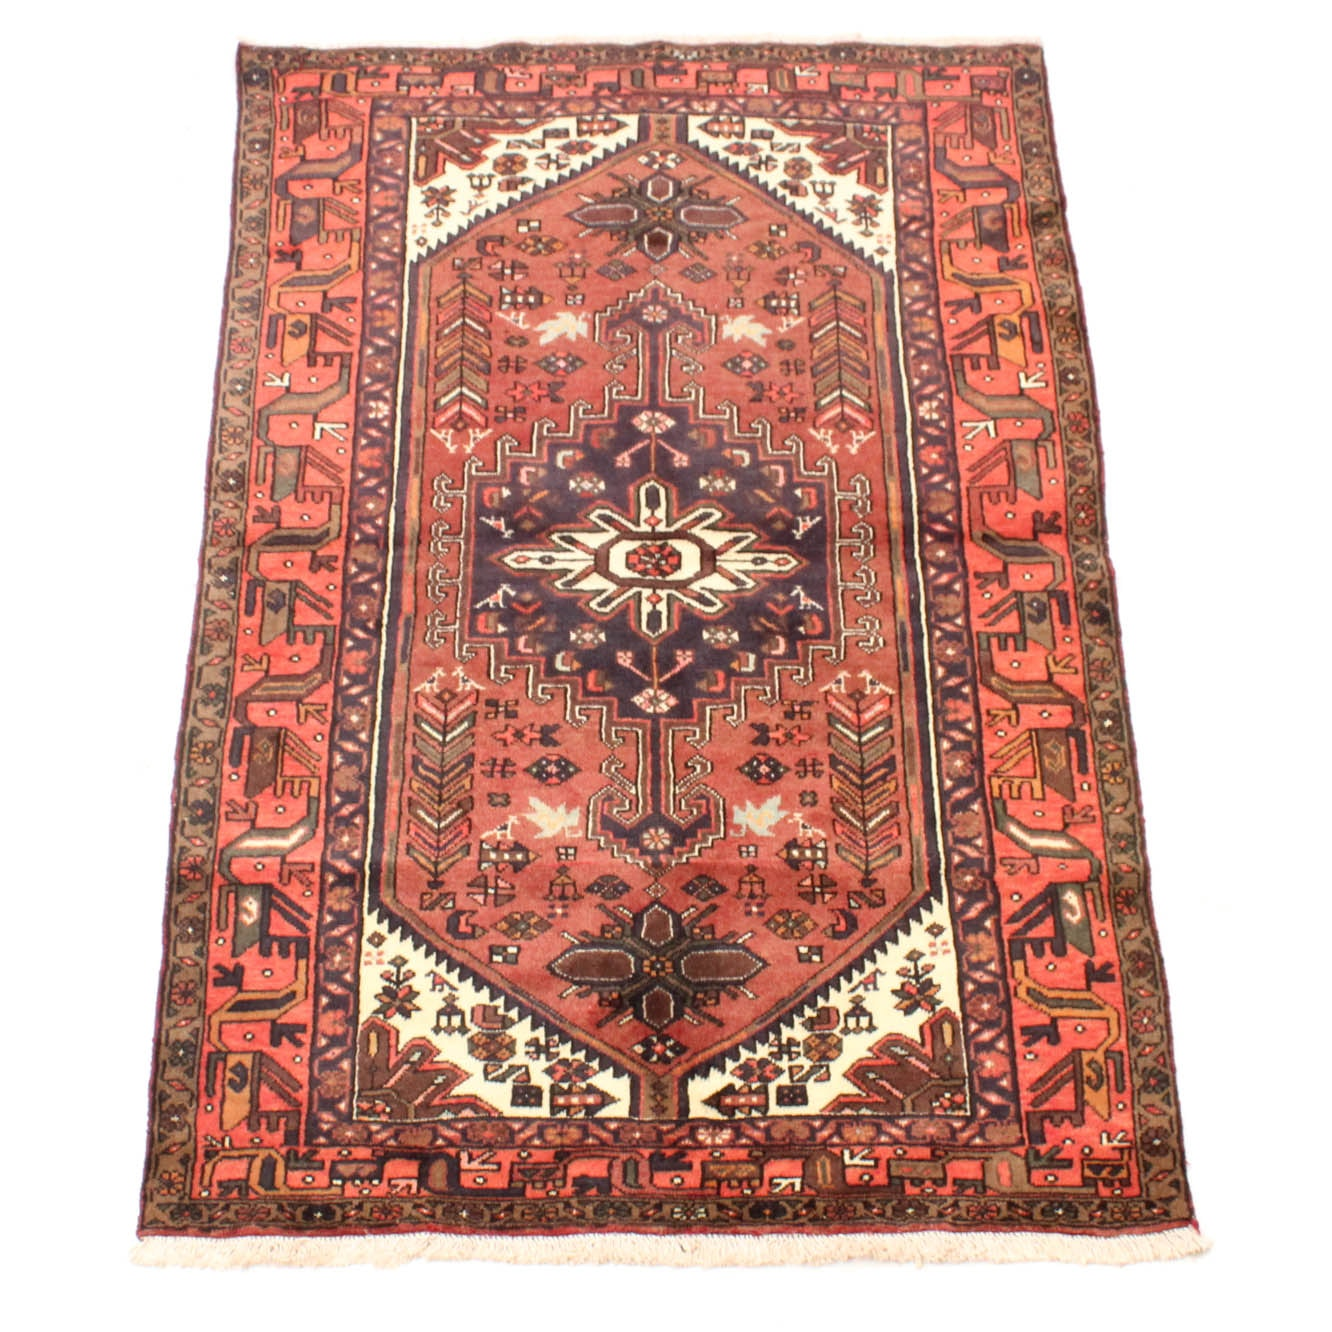 4' x 7' Fine Hand-Knotted Persian Zanjan Pictorial Rug